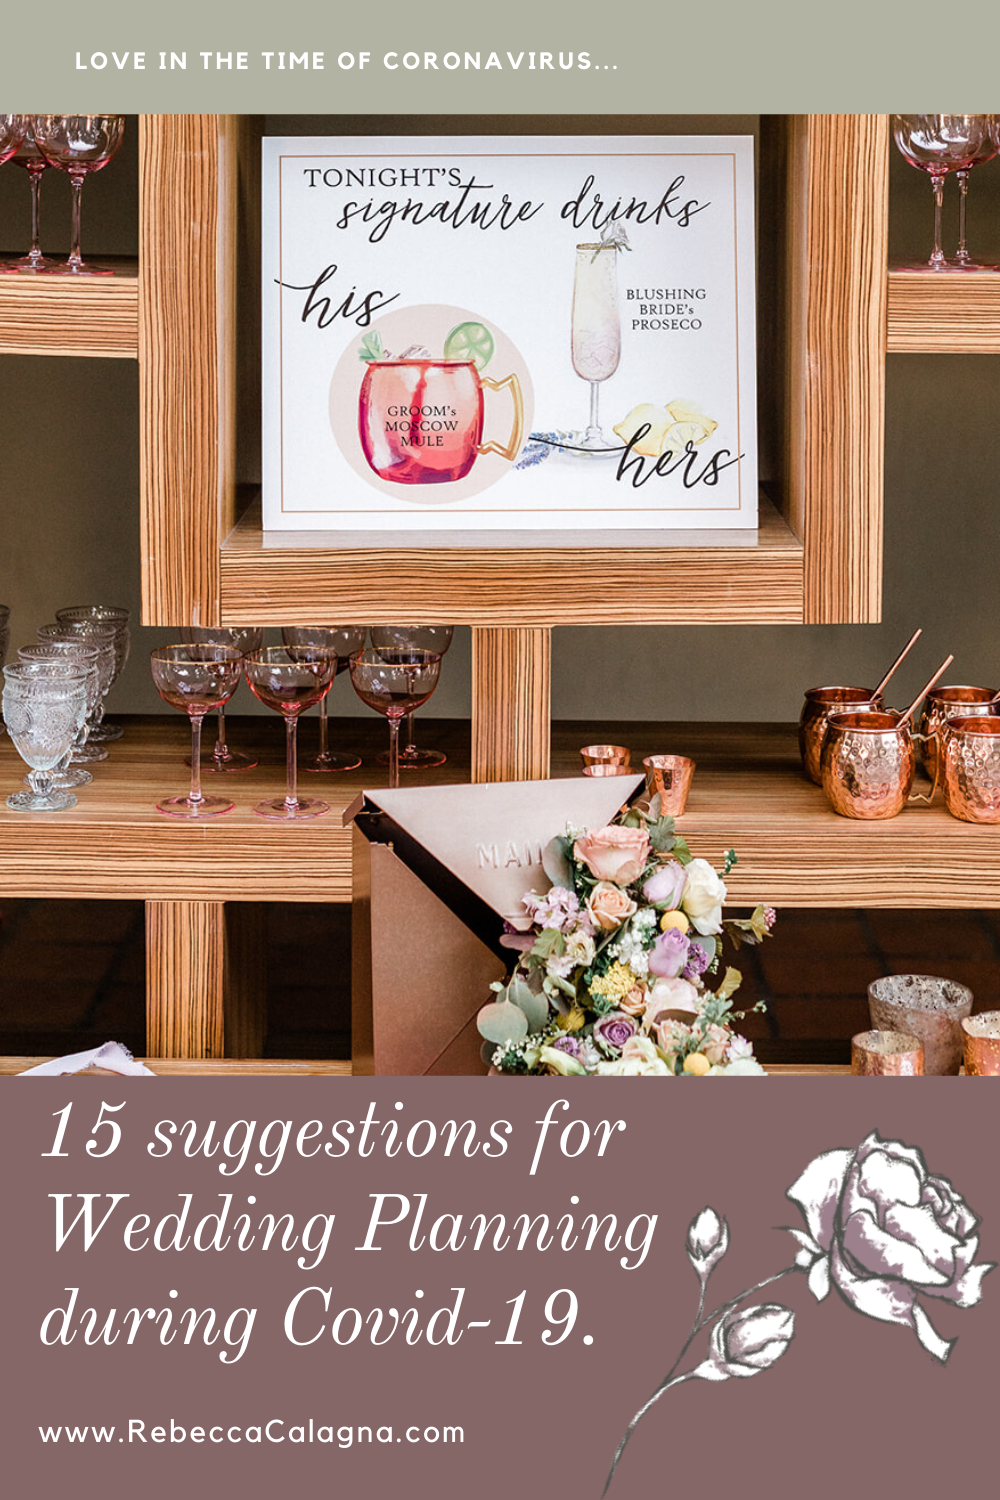 15 suggestions for Wedding Planning during Covid-19!